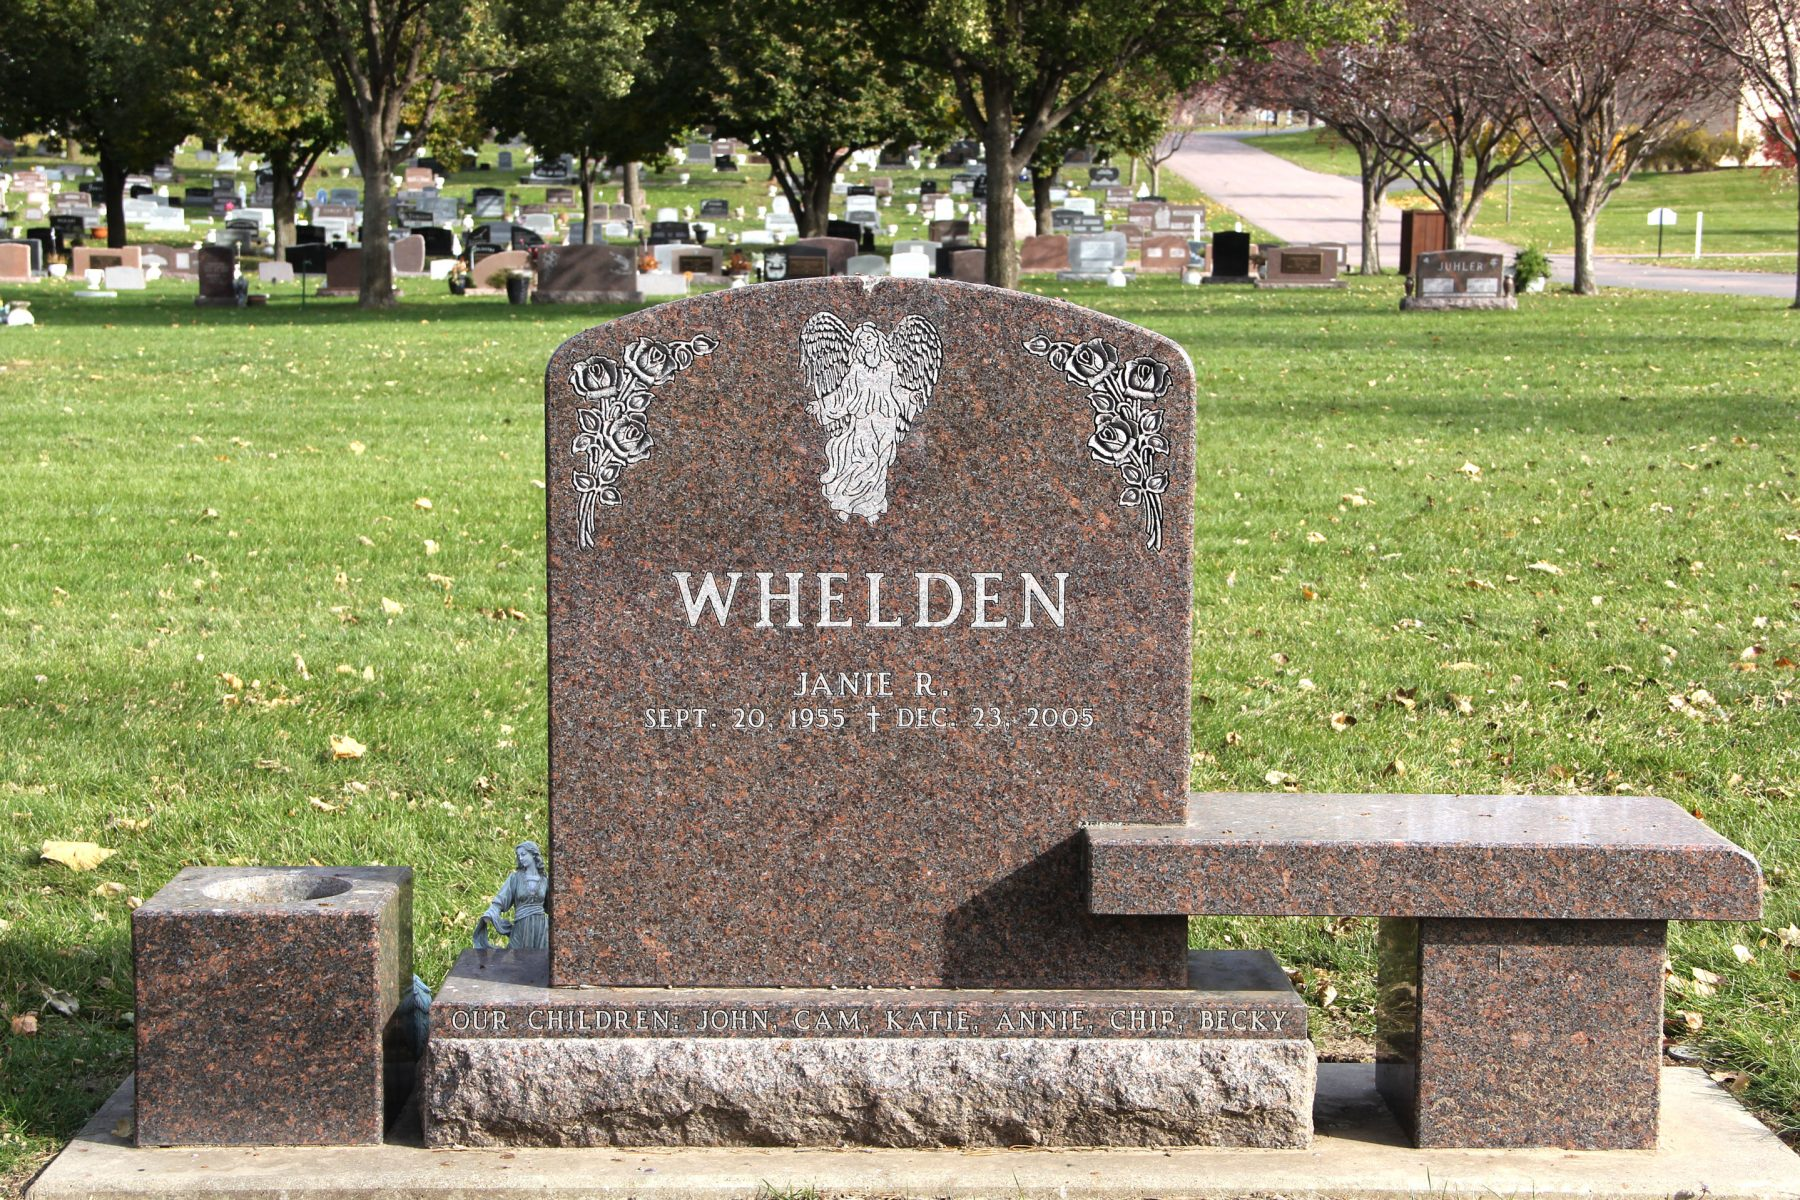 Whelden Web